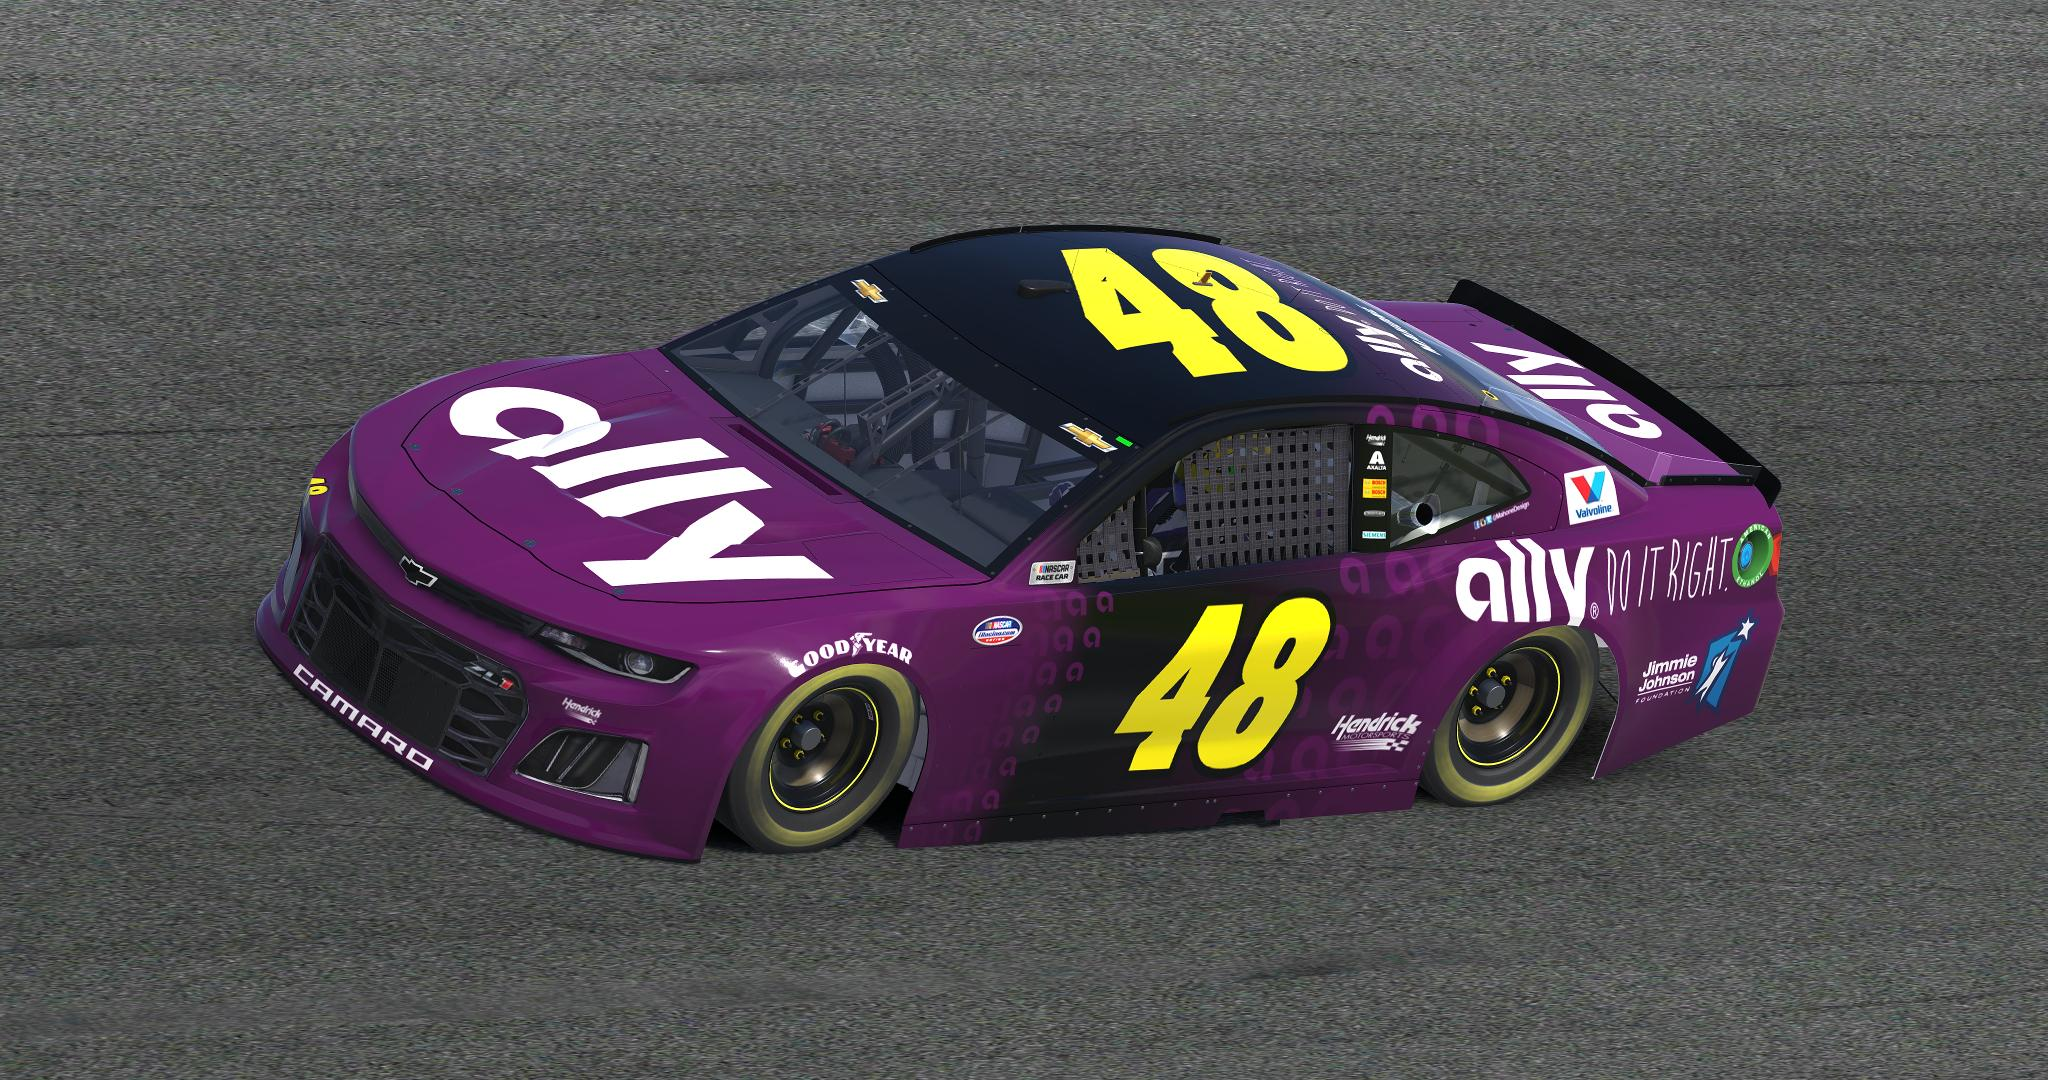 2019 Jimmie Johnson Ally Concept V1 By Anthony Mahone